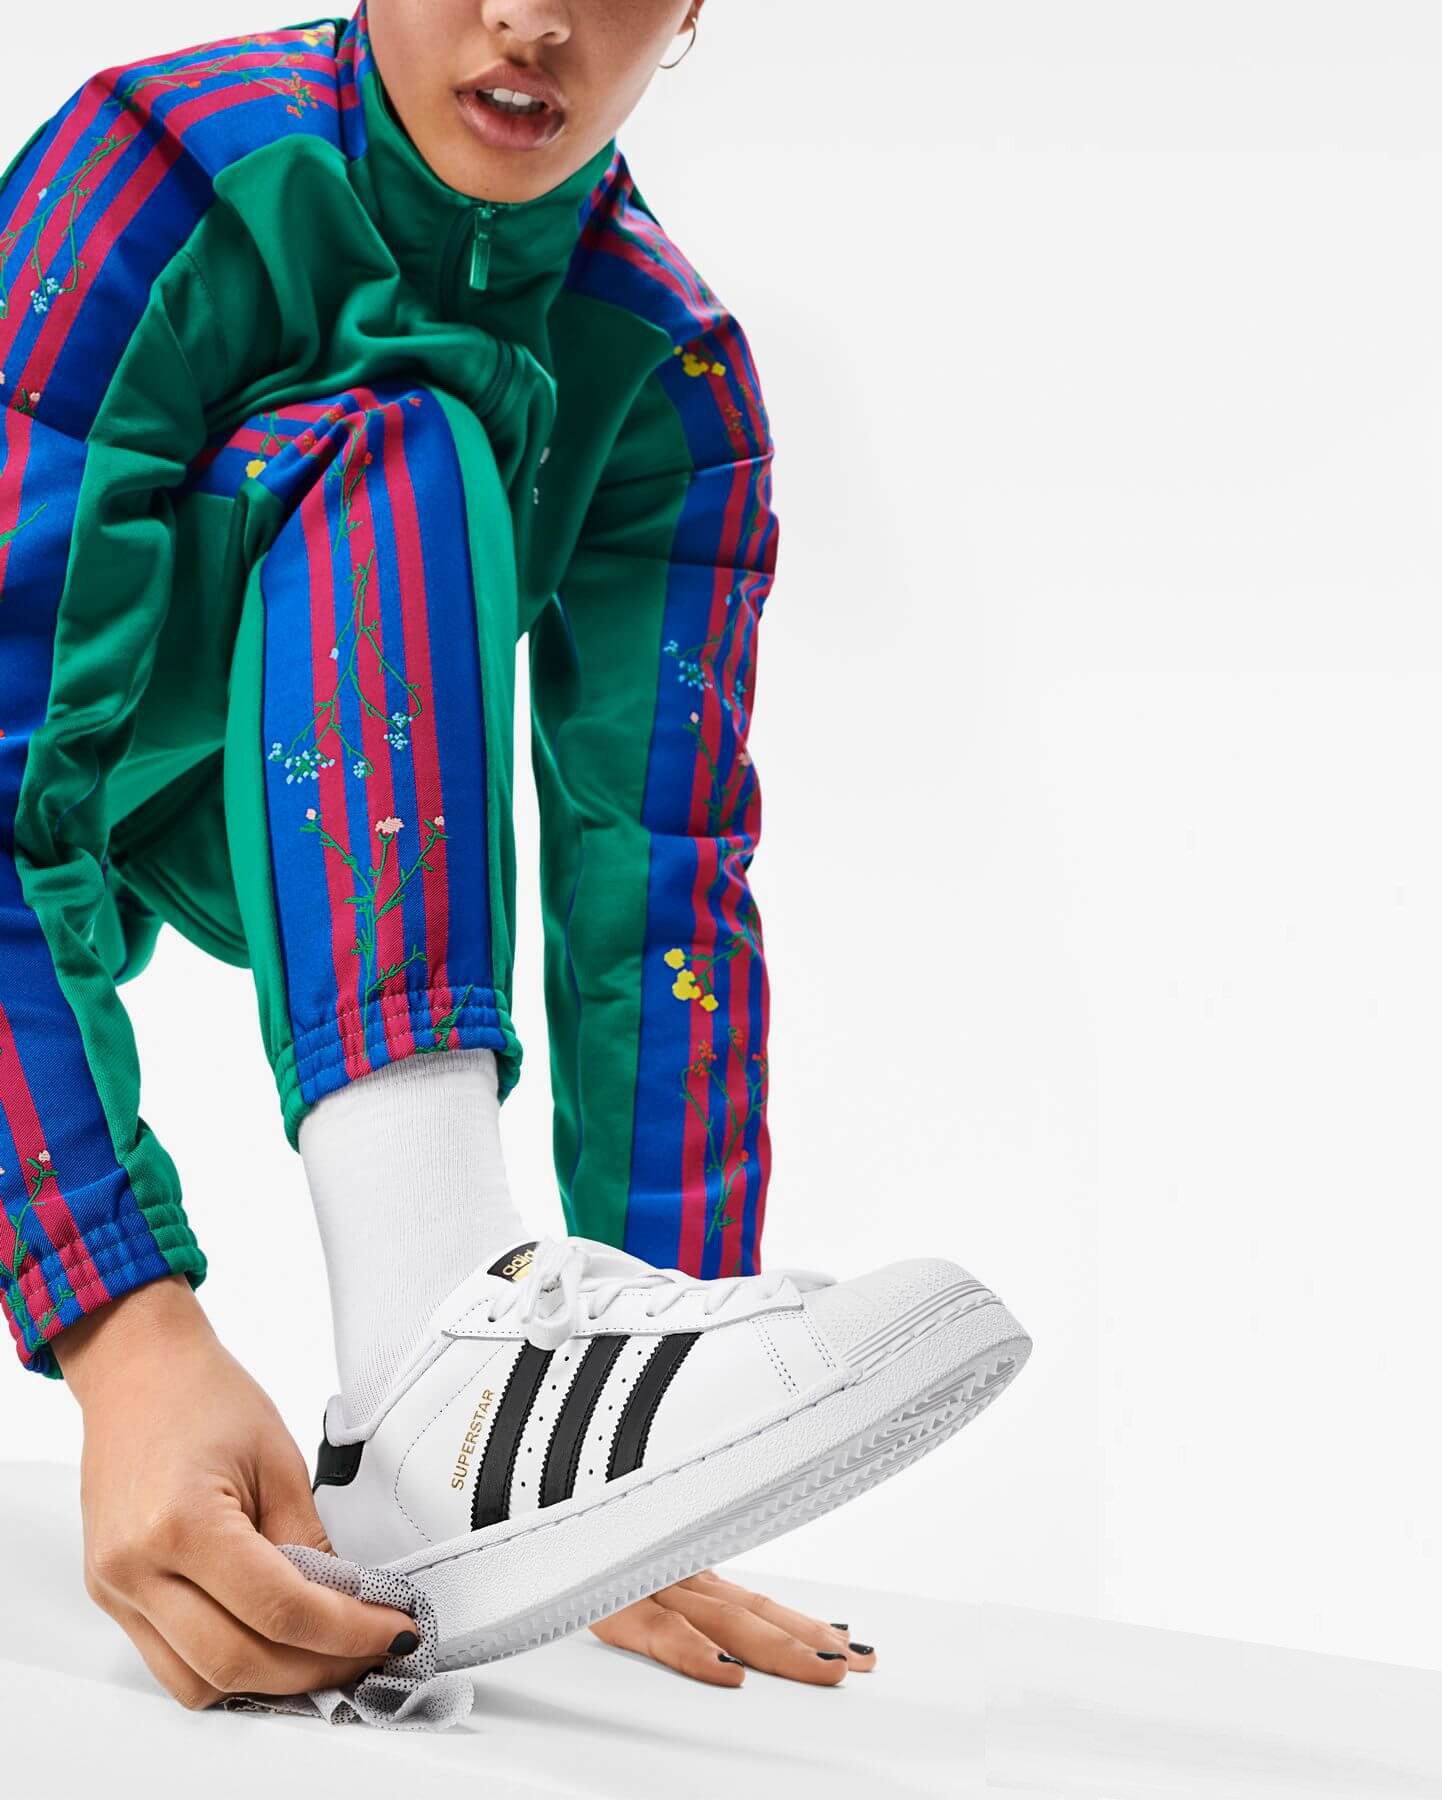 adidas Originals Shoe Care Collection - Sneaker Wipes